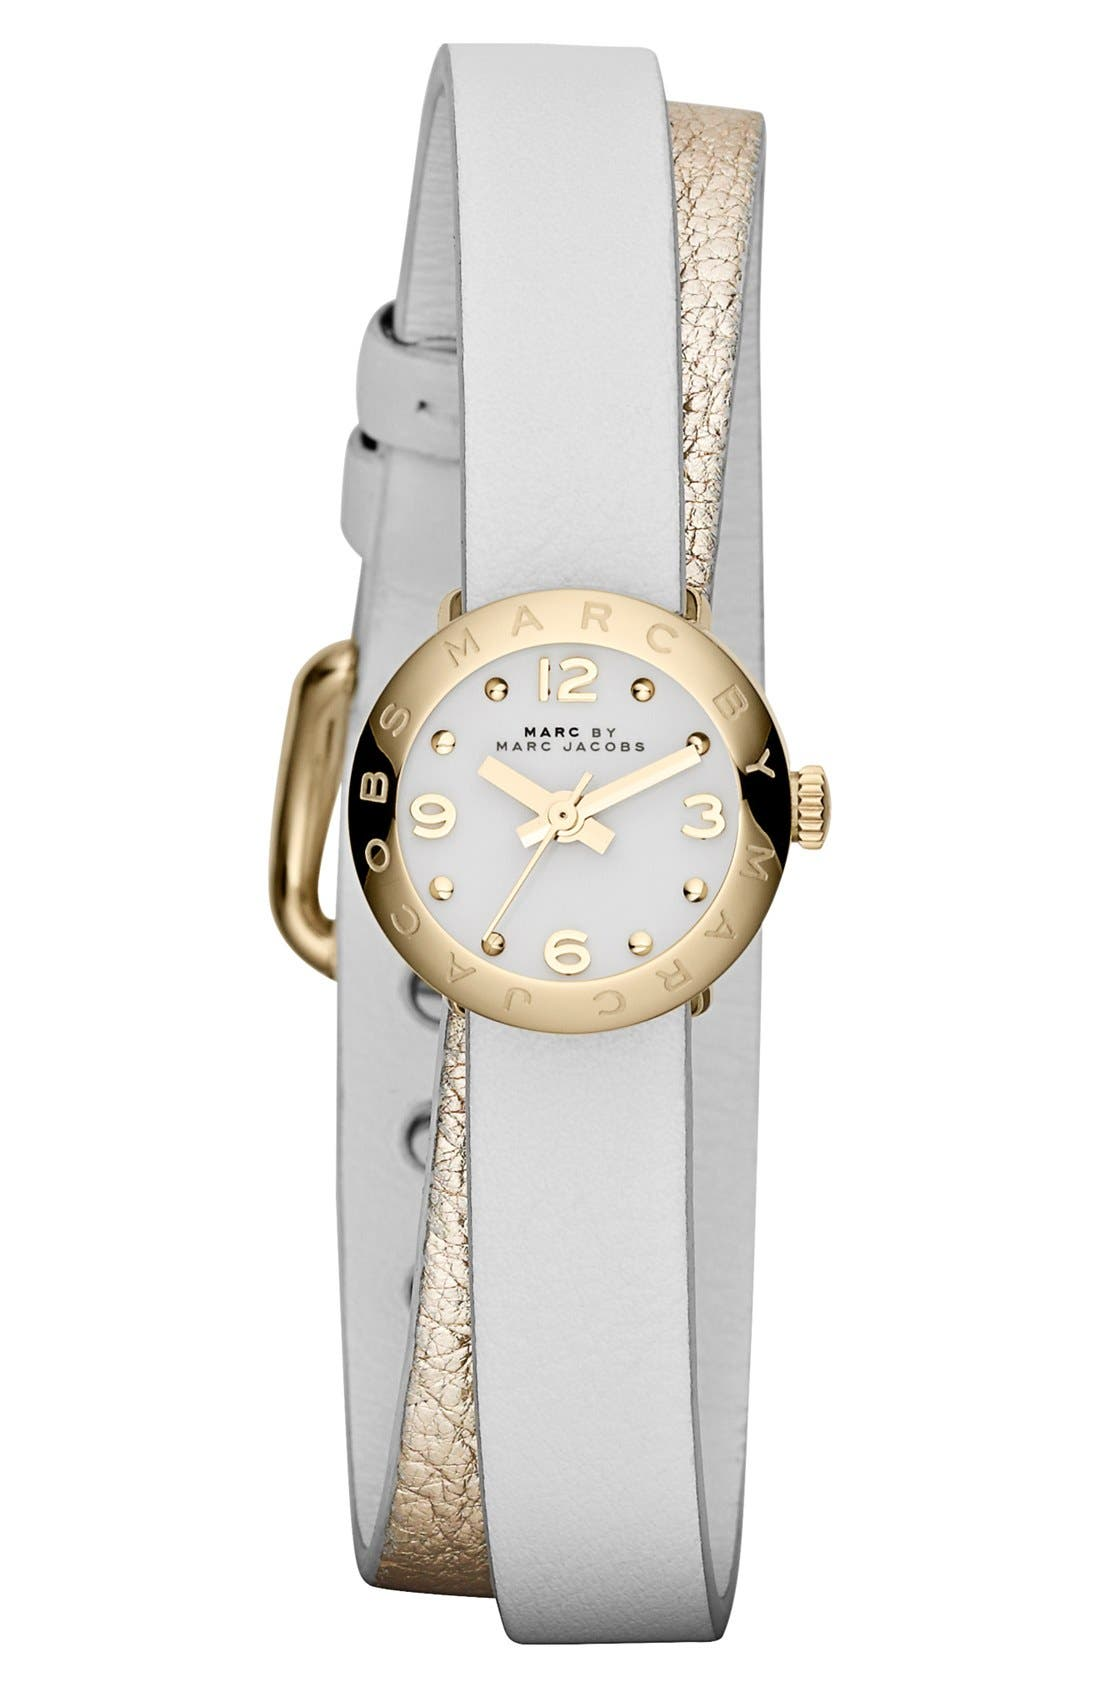 Alternate Image 1 Selected - MARC JACOBS 'Amy Dinky' Double Wrap Strap Watch, 21mm